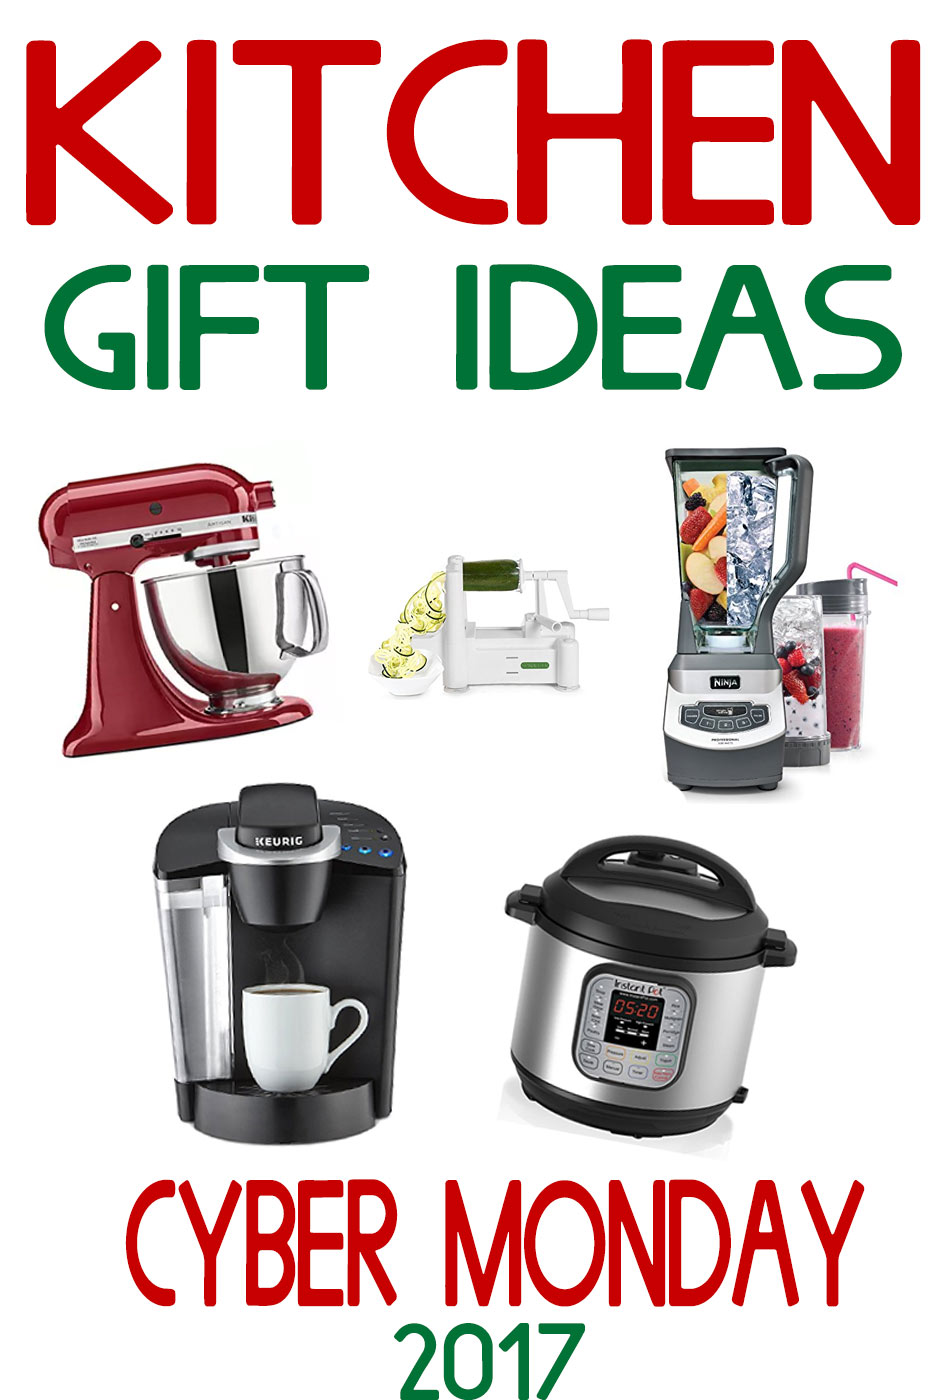 Kitchen Gift Ideas  Cyber Monday 2017  Kleinworth  Co